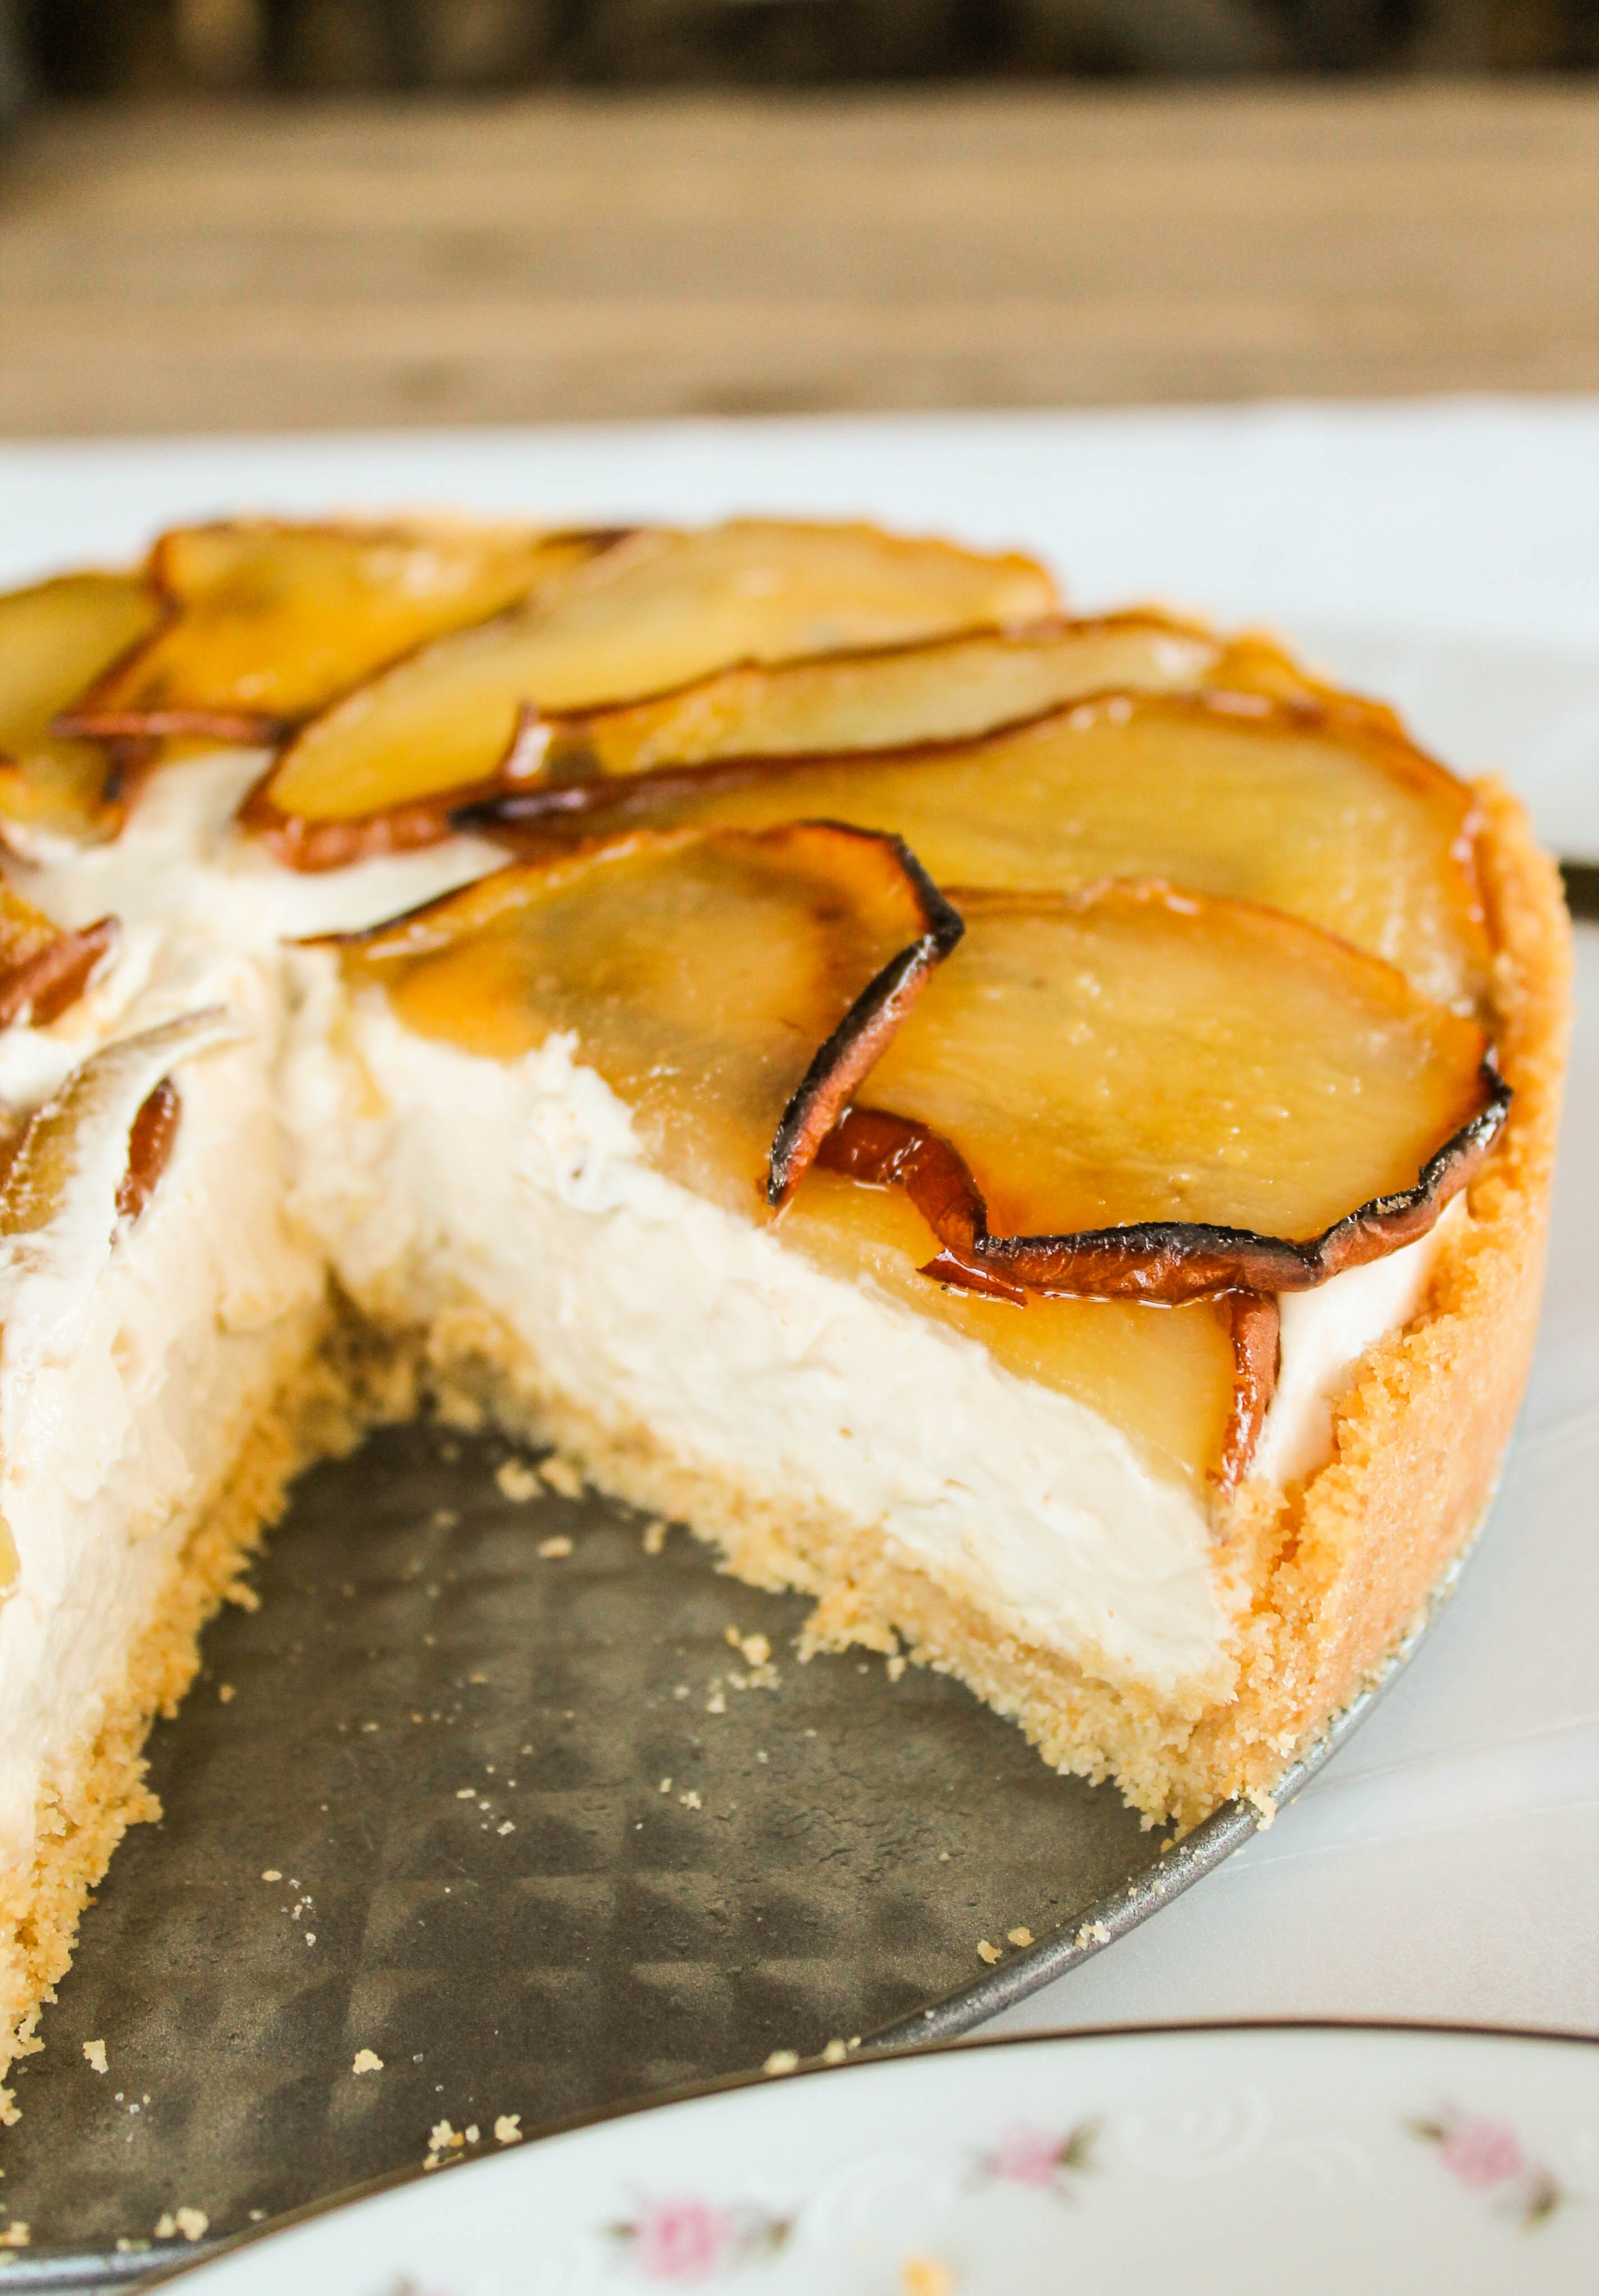 Maple Cheesecake with Roasted Pears - The Food Charlatan